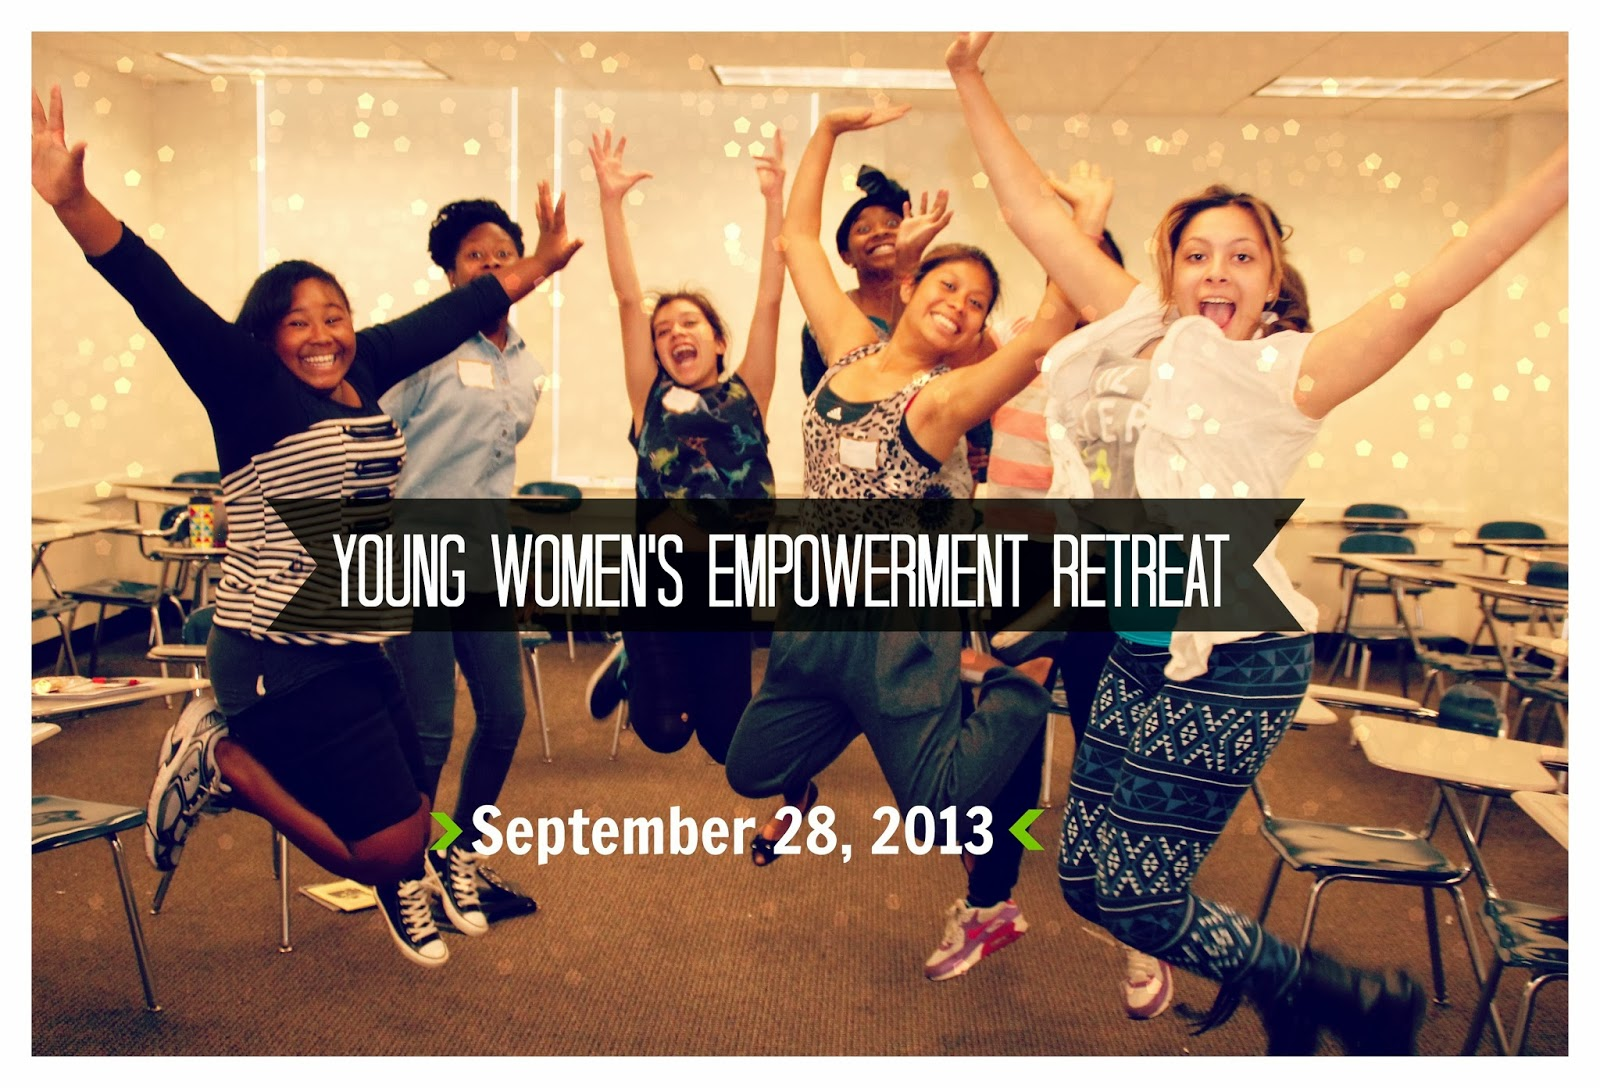 womens-empowerment-retreat.jpg